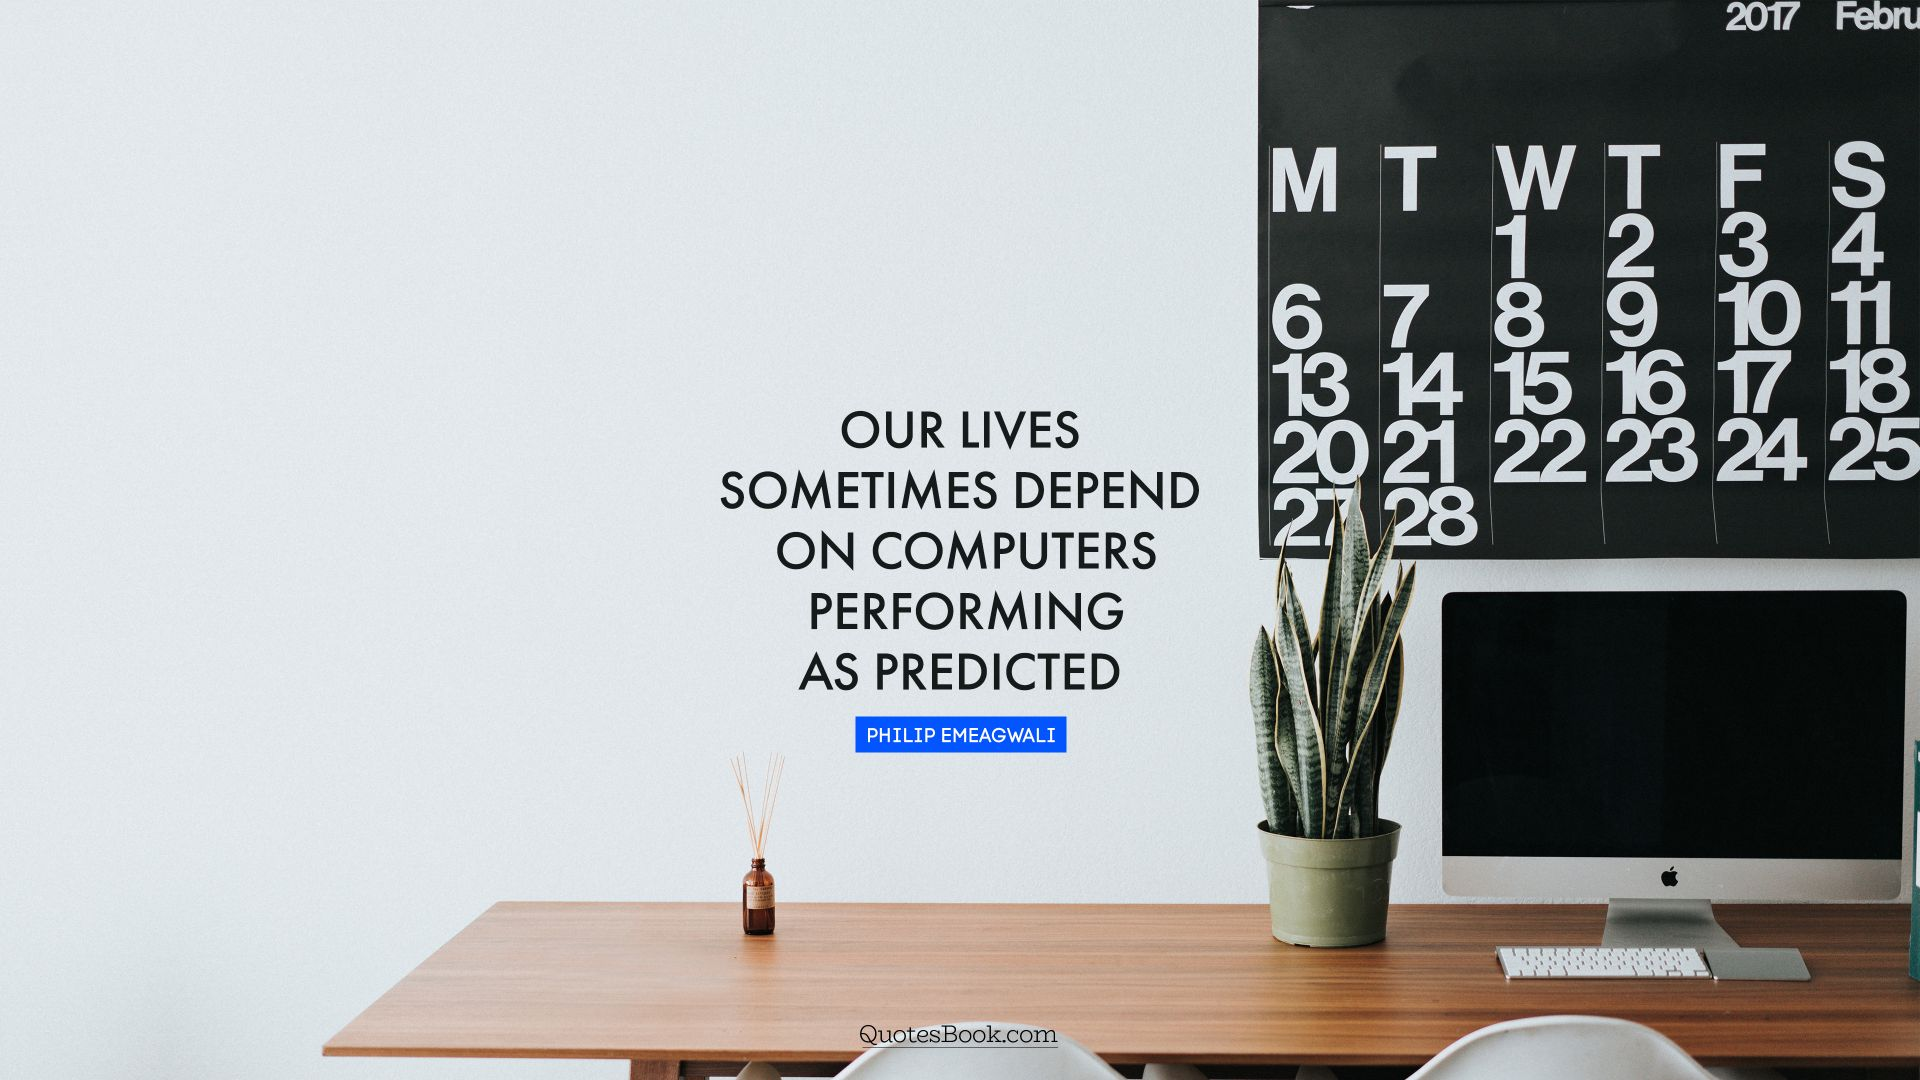 Our lives sometimes depend on computers performing as predicted. - Quote by Philip Emeagwali